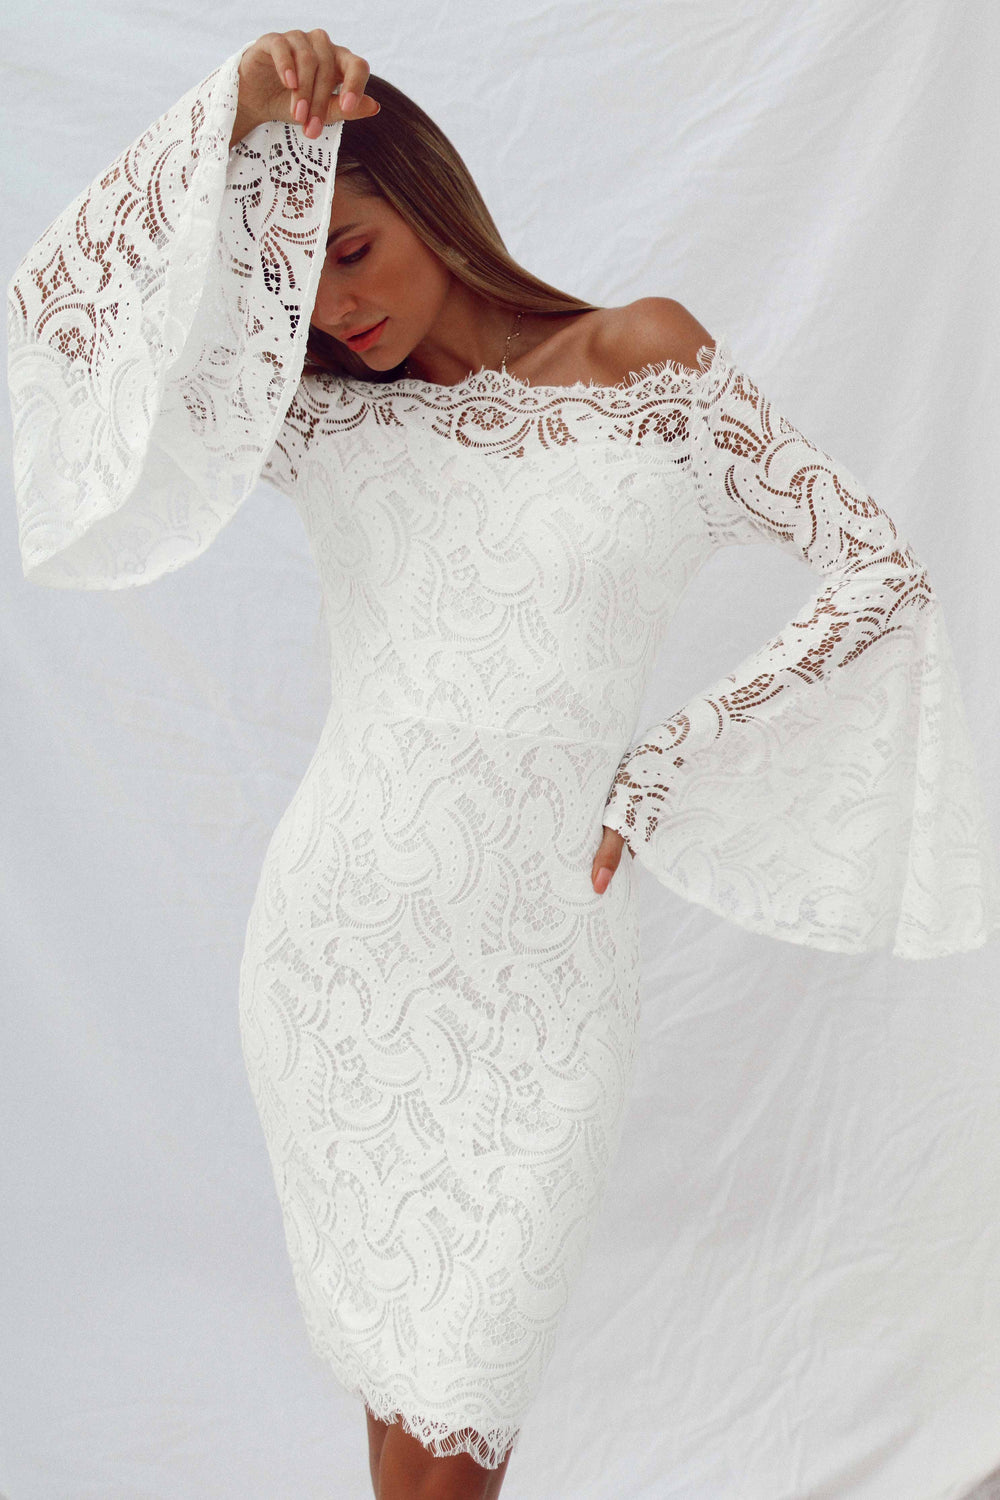 MIRELLA DRESS IN WHITE - Chic Le Frique